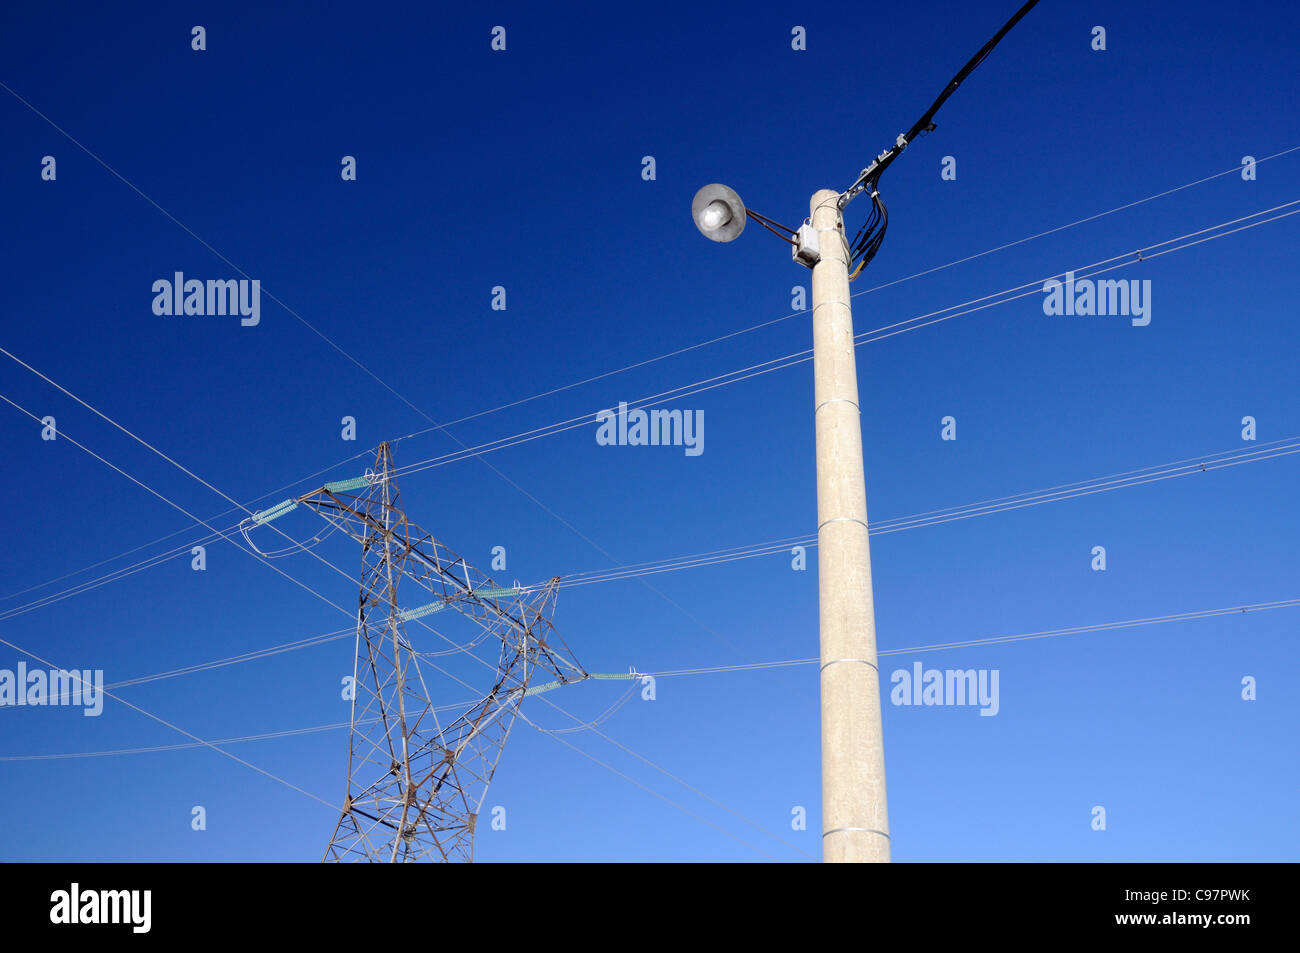 Power pylon and street lamp against blue sky - Stock Image